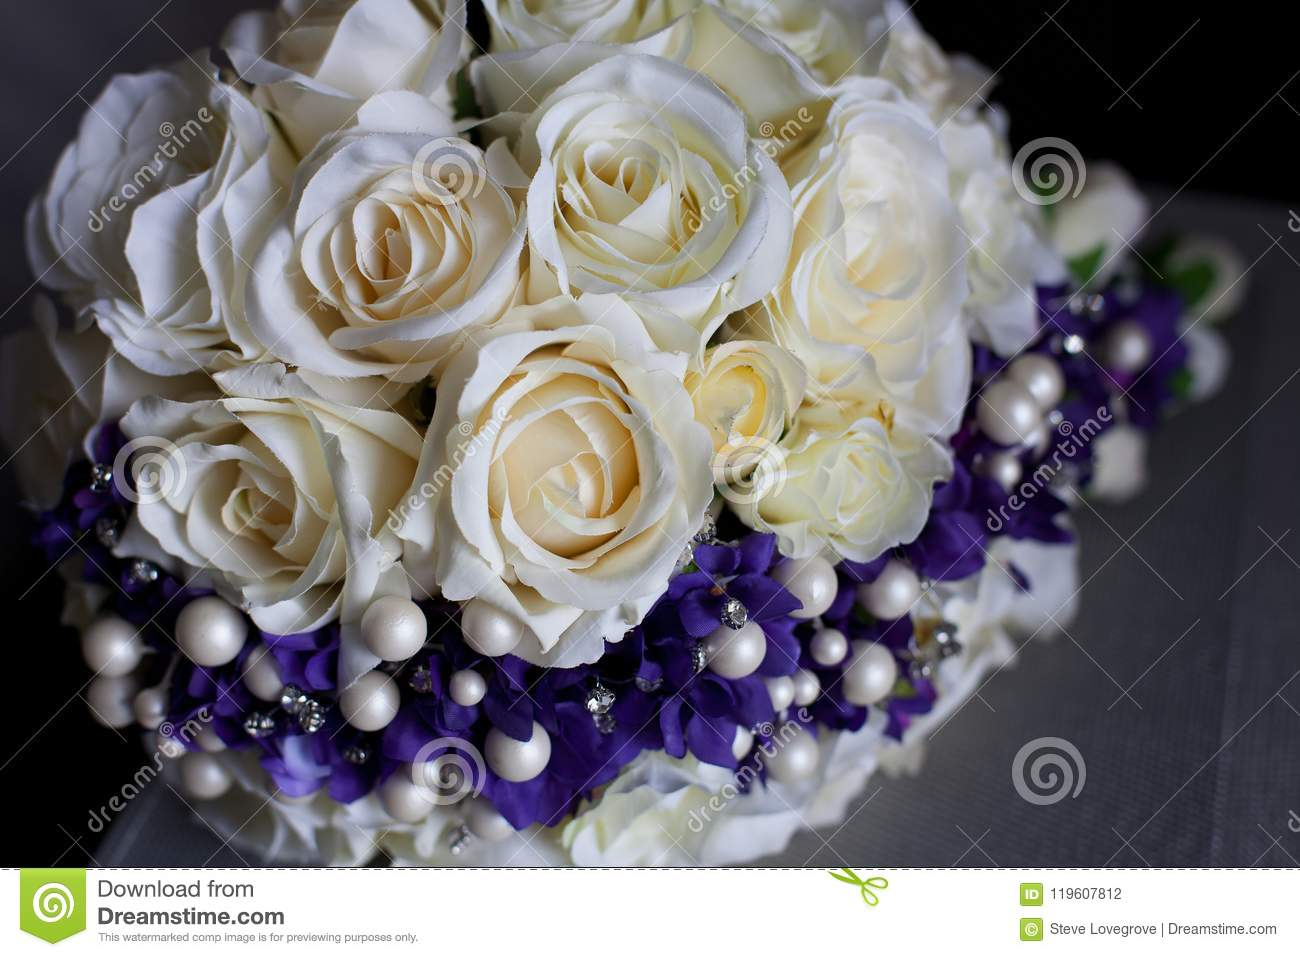 Wedding bouquet of artificial flowers stock photo image of bridal bouquet of artificial white rose flowers for a wedding izmirmasajfo